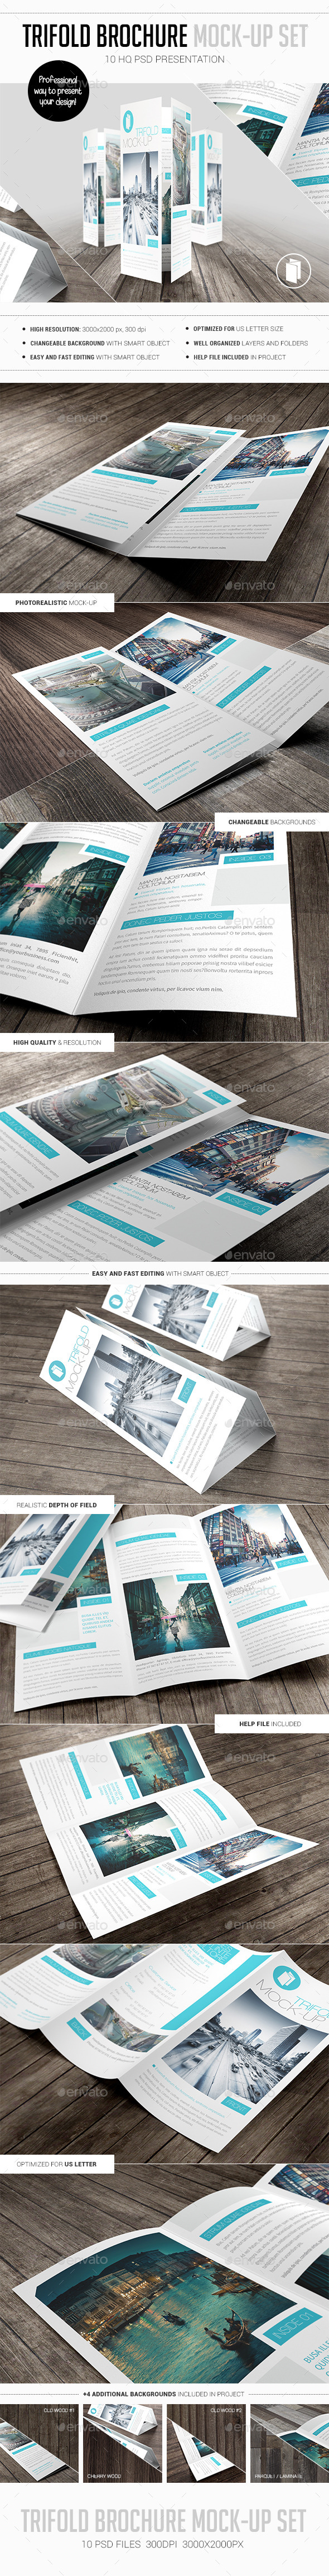 GraphicRiver Trifold Brochure Mock-Up Set 10475478